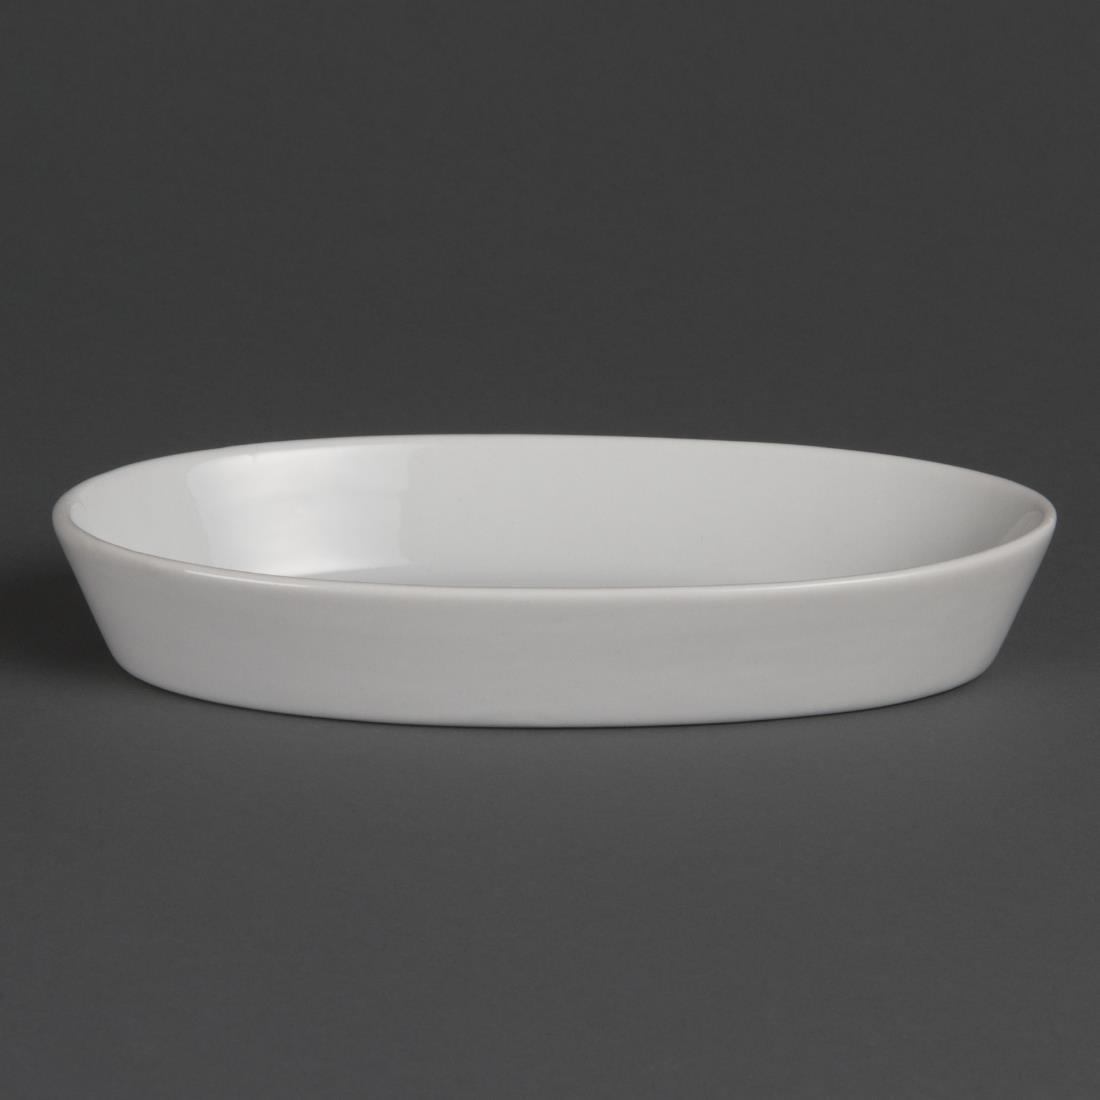 W418 - Olympia Whiteware Oval Sole Dish